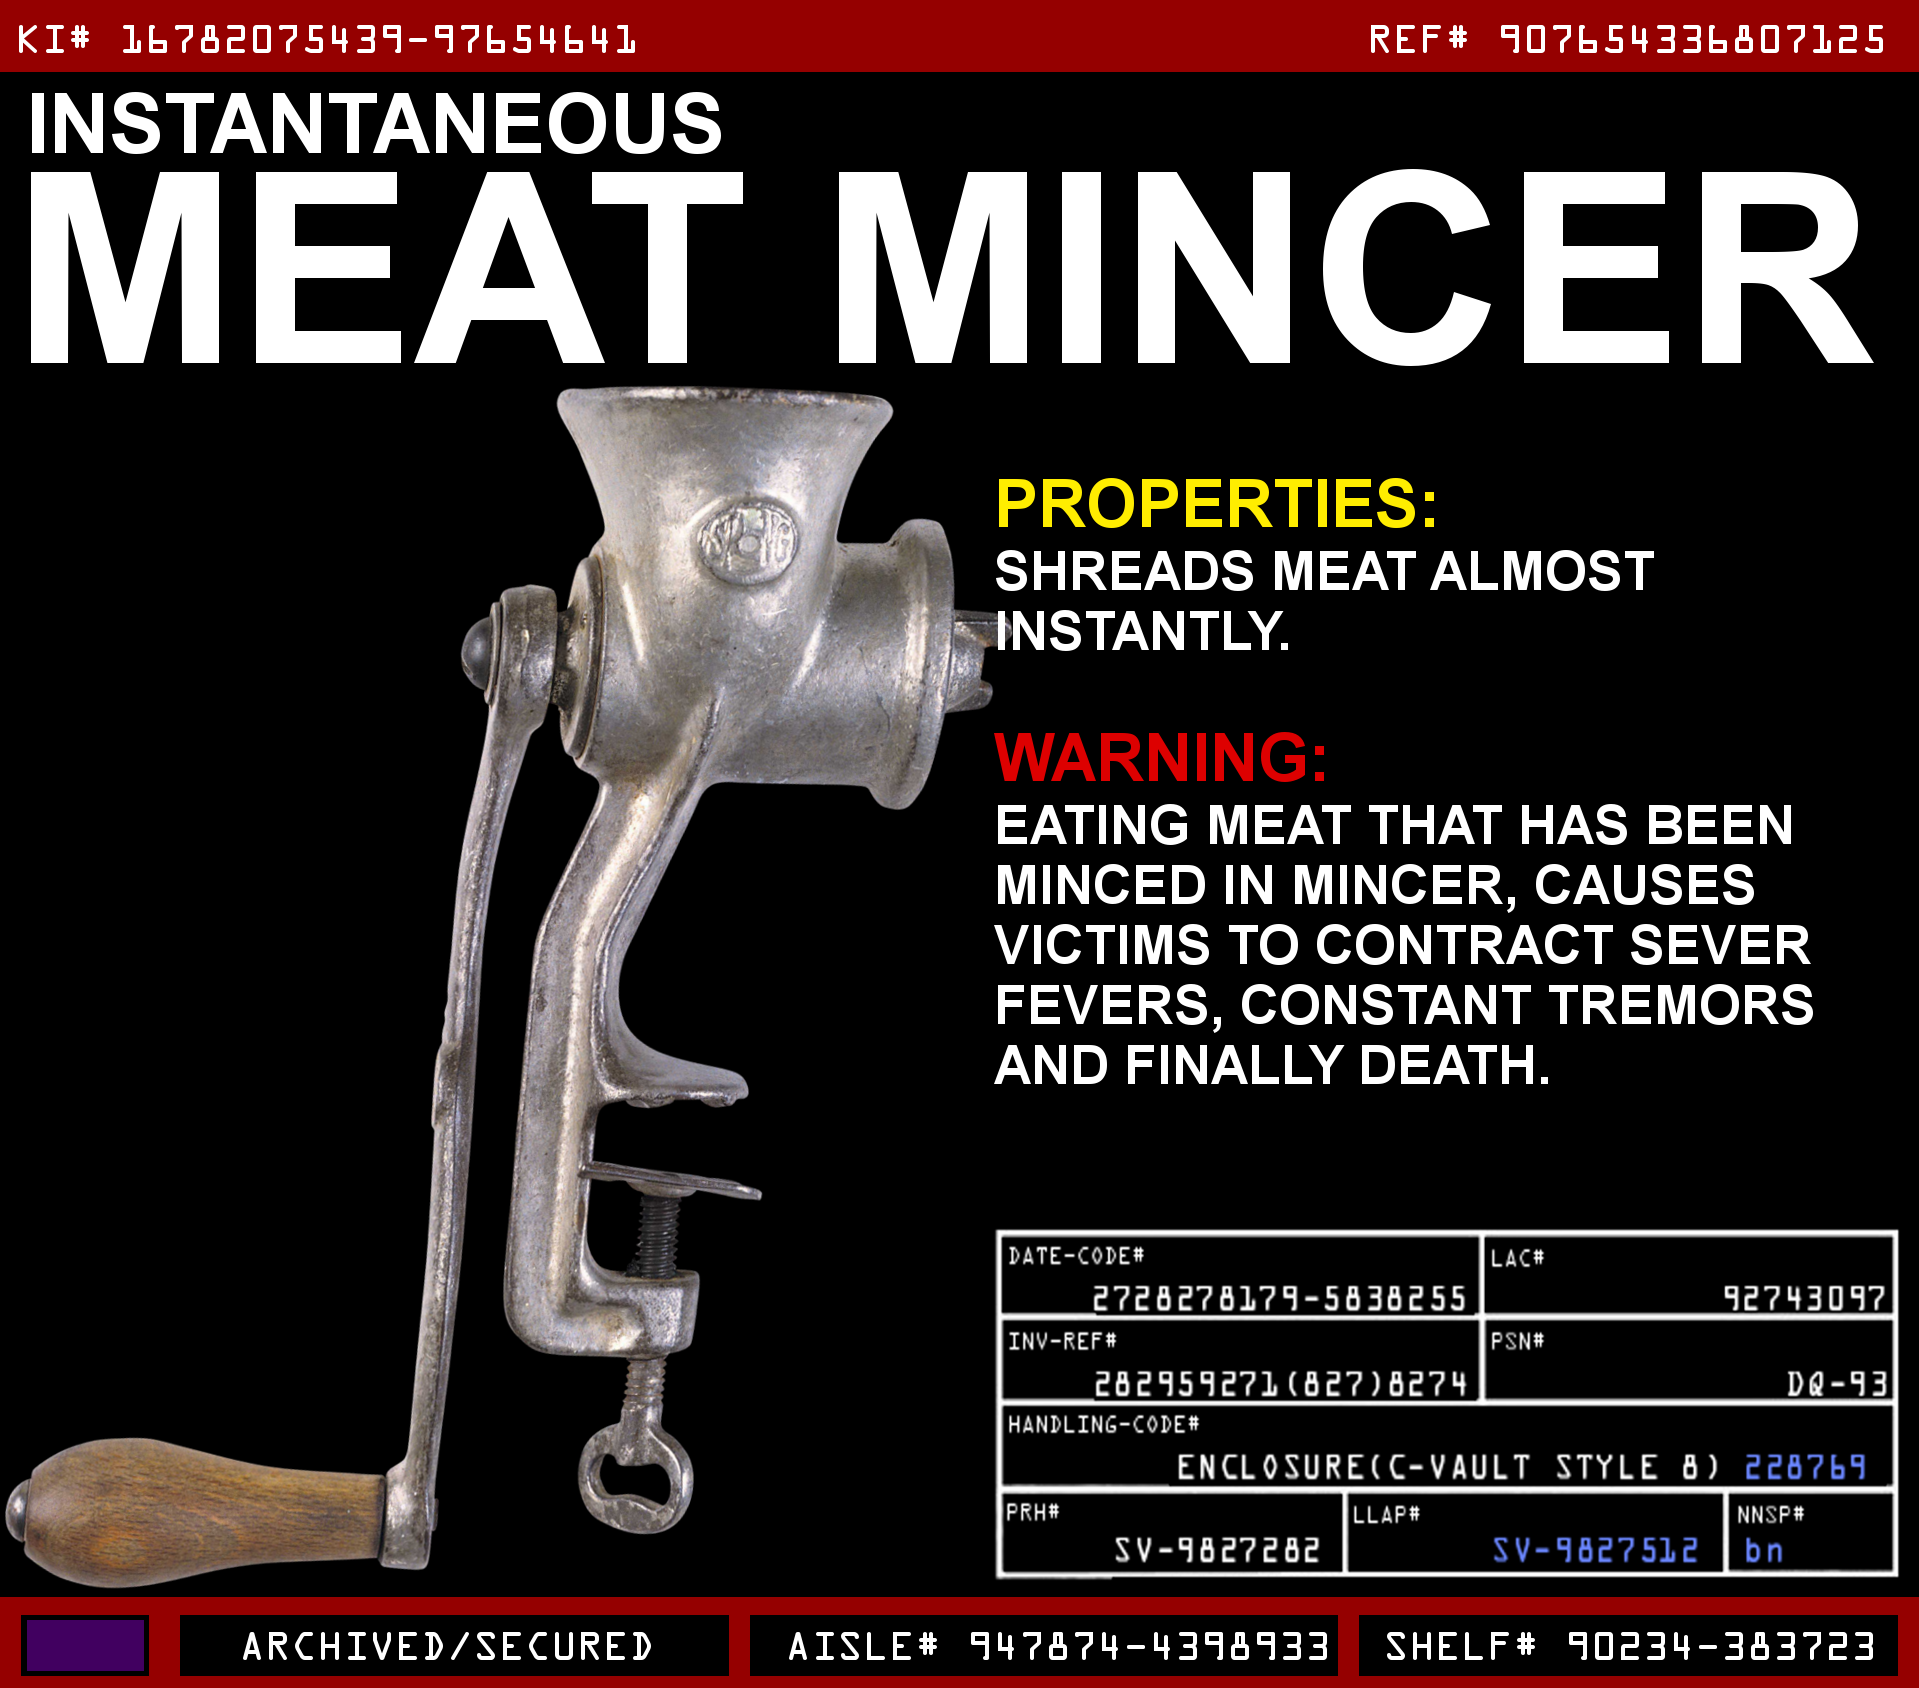 Instantaneous Meat Mincer